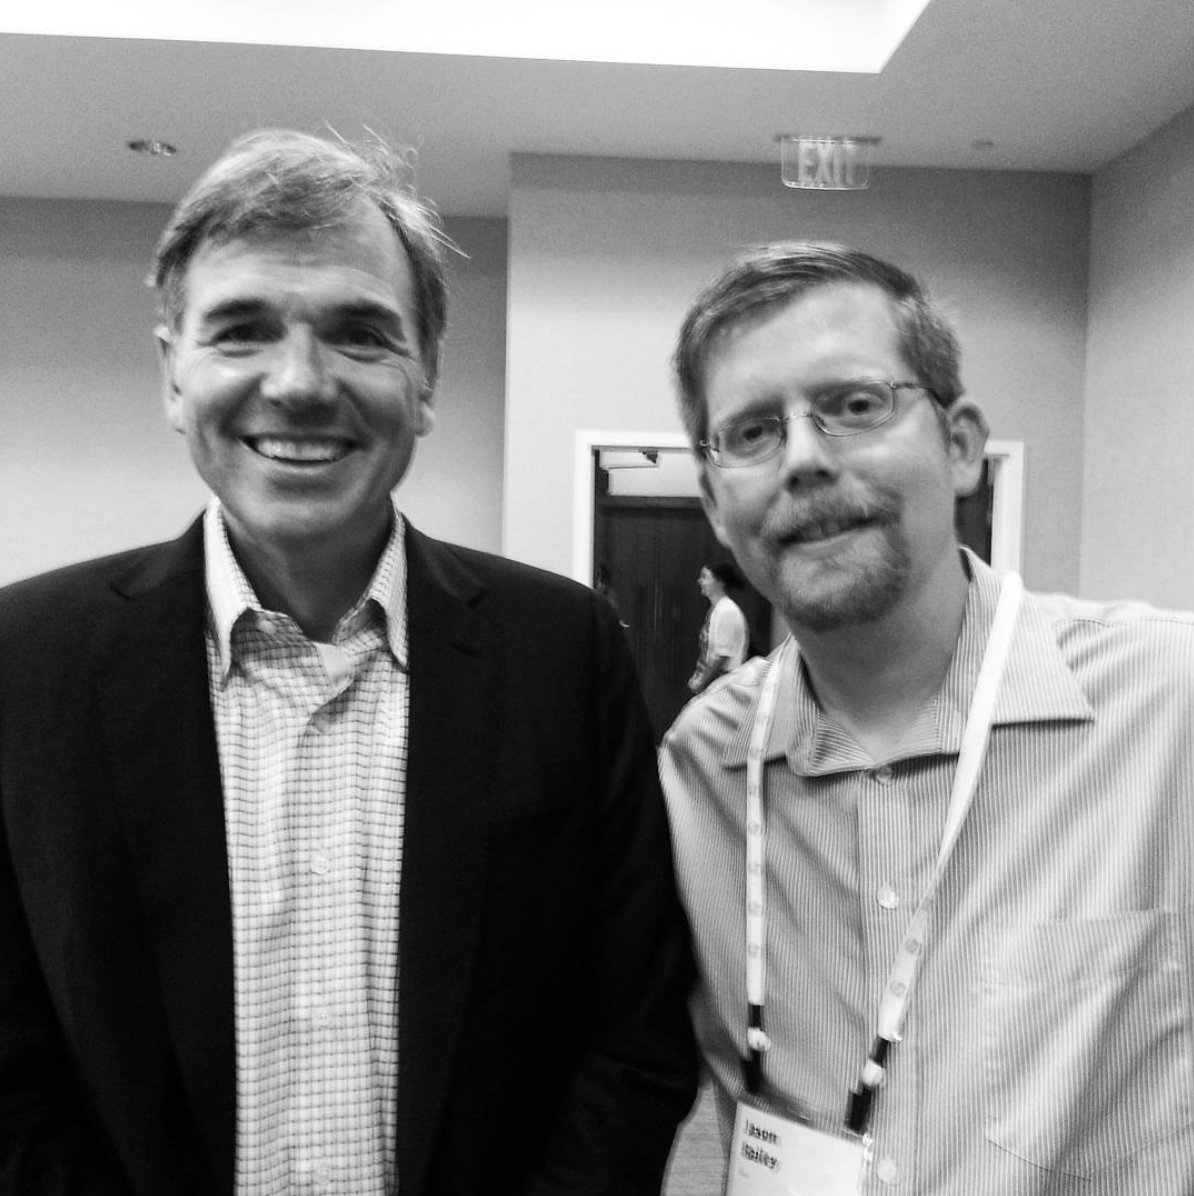 Me being star struck at the chance of meeting Billy Beane.